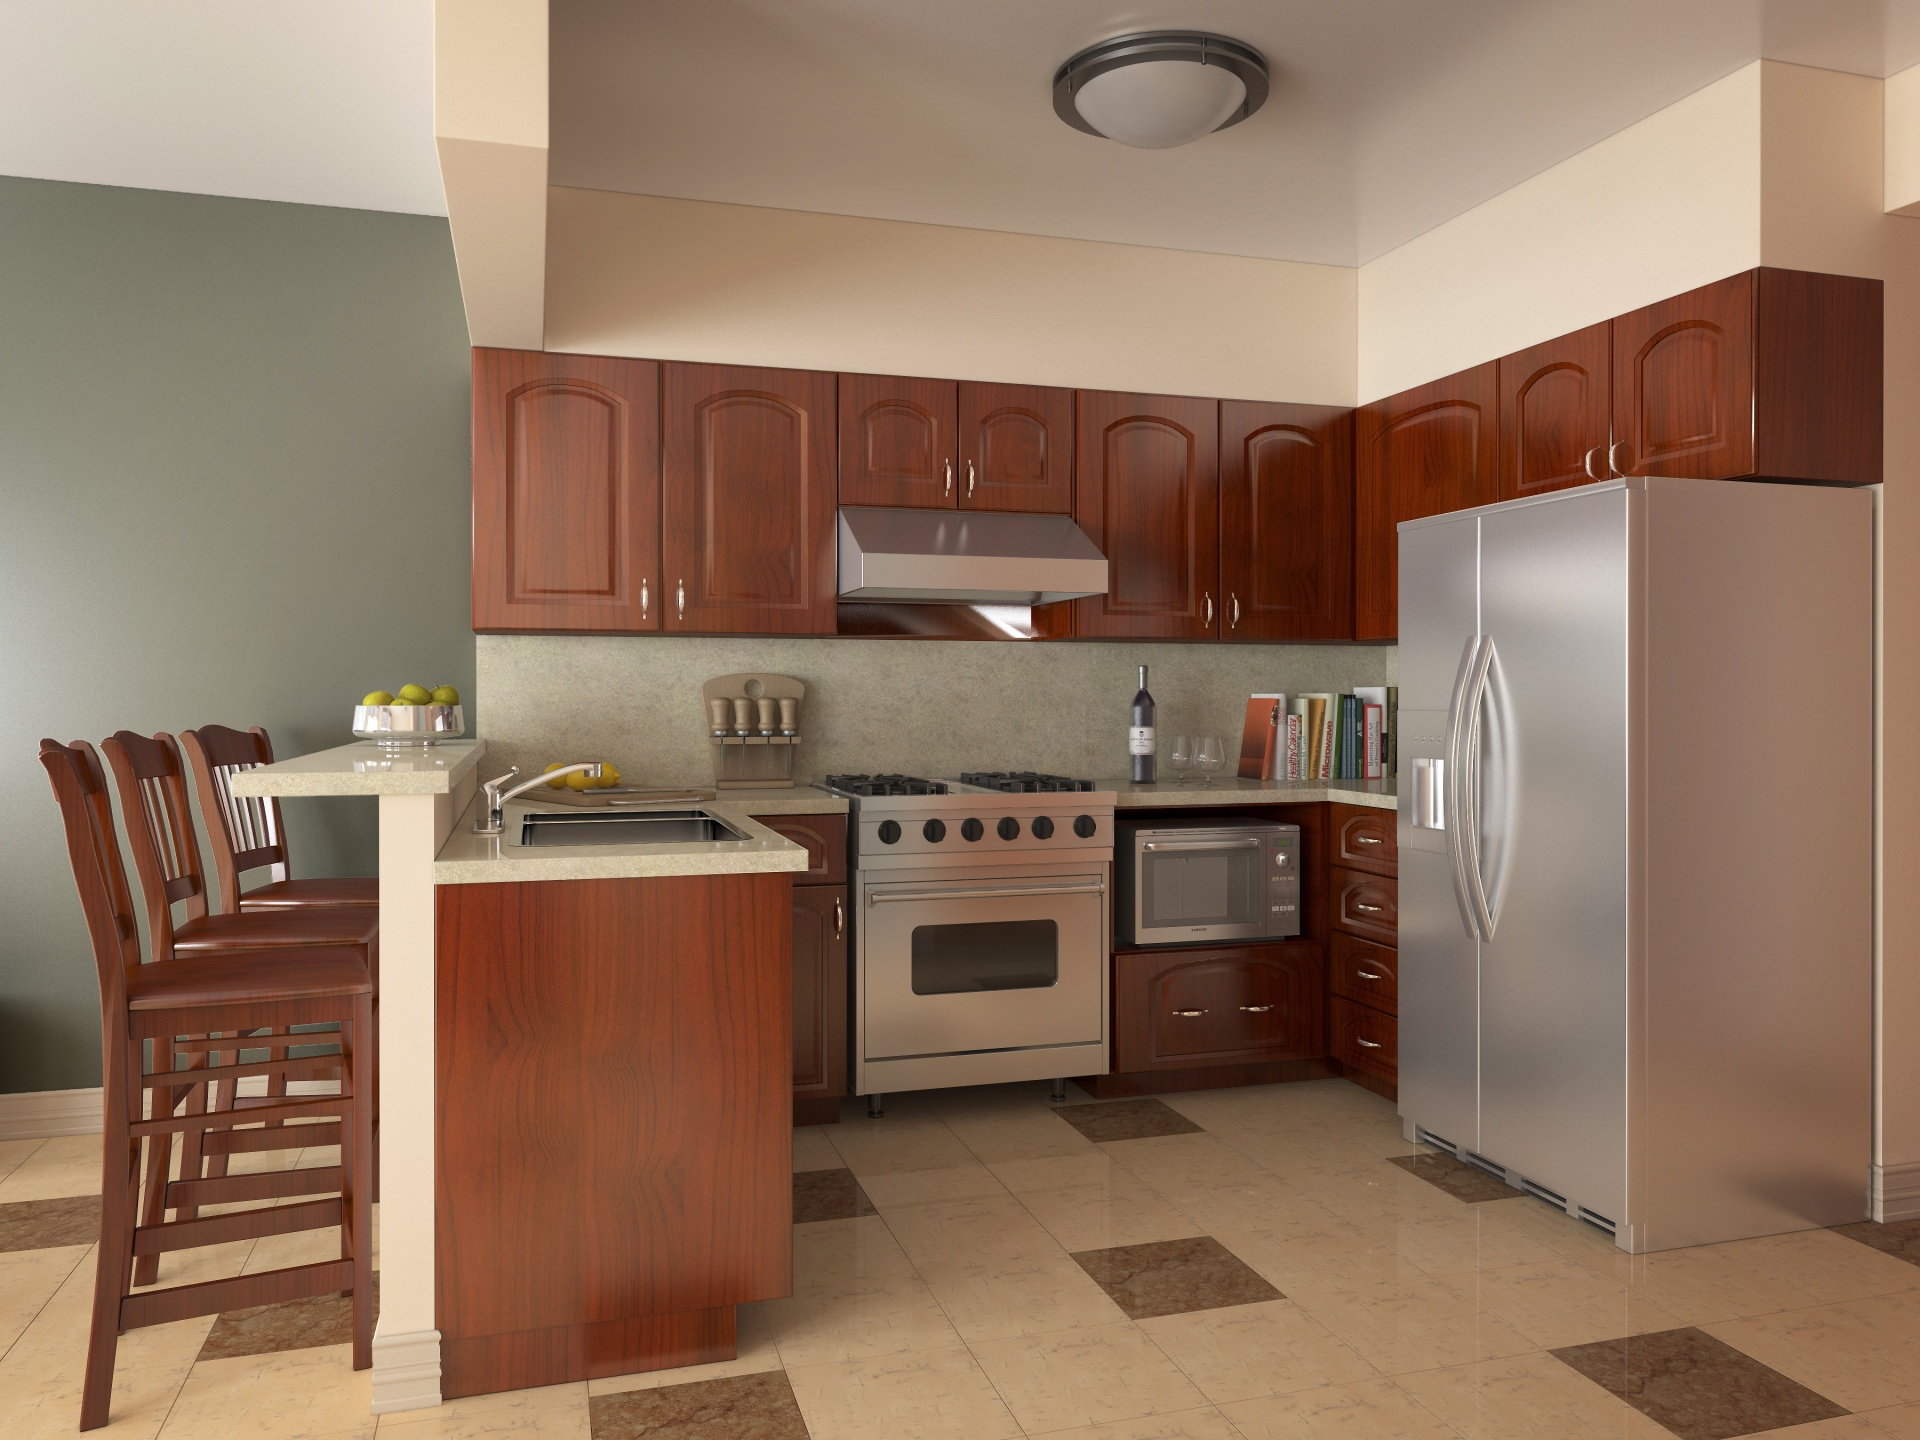 Culinary Institute of American - The Villas - New Townhouse